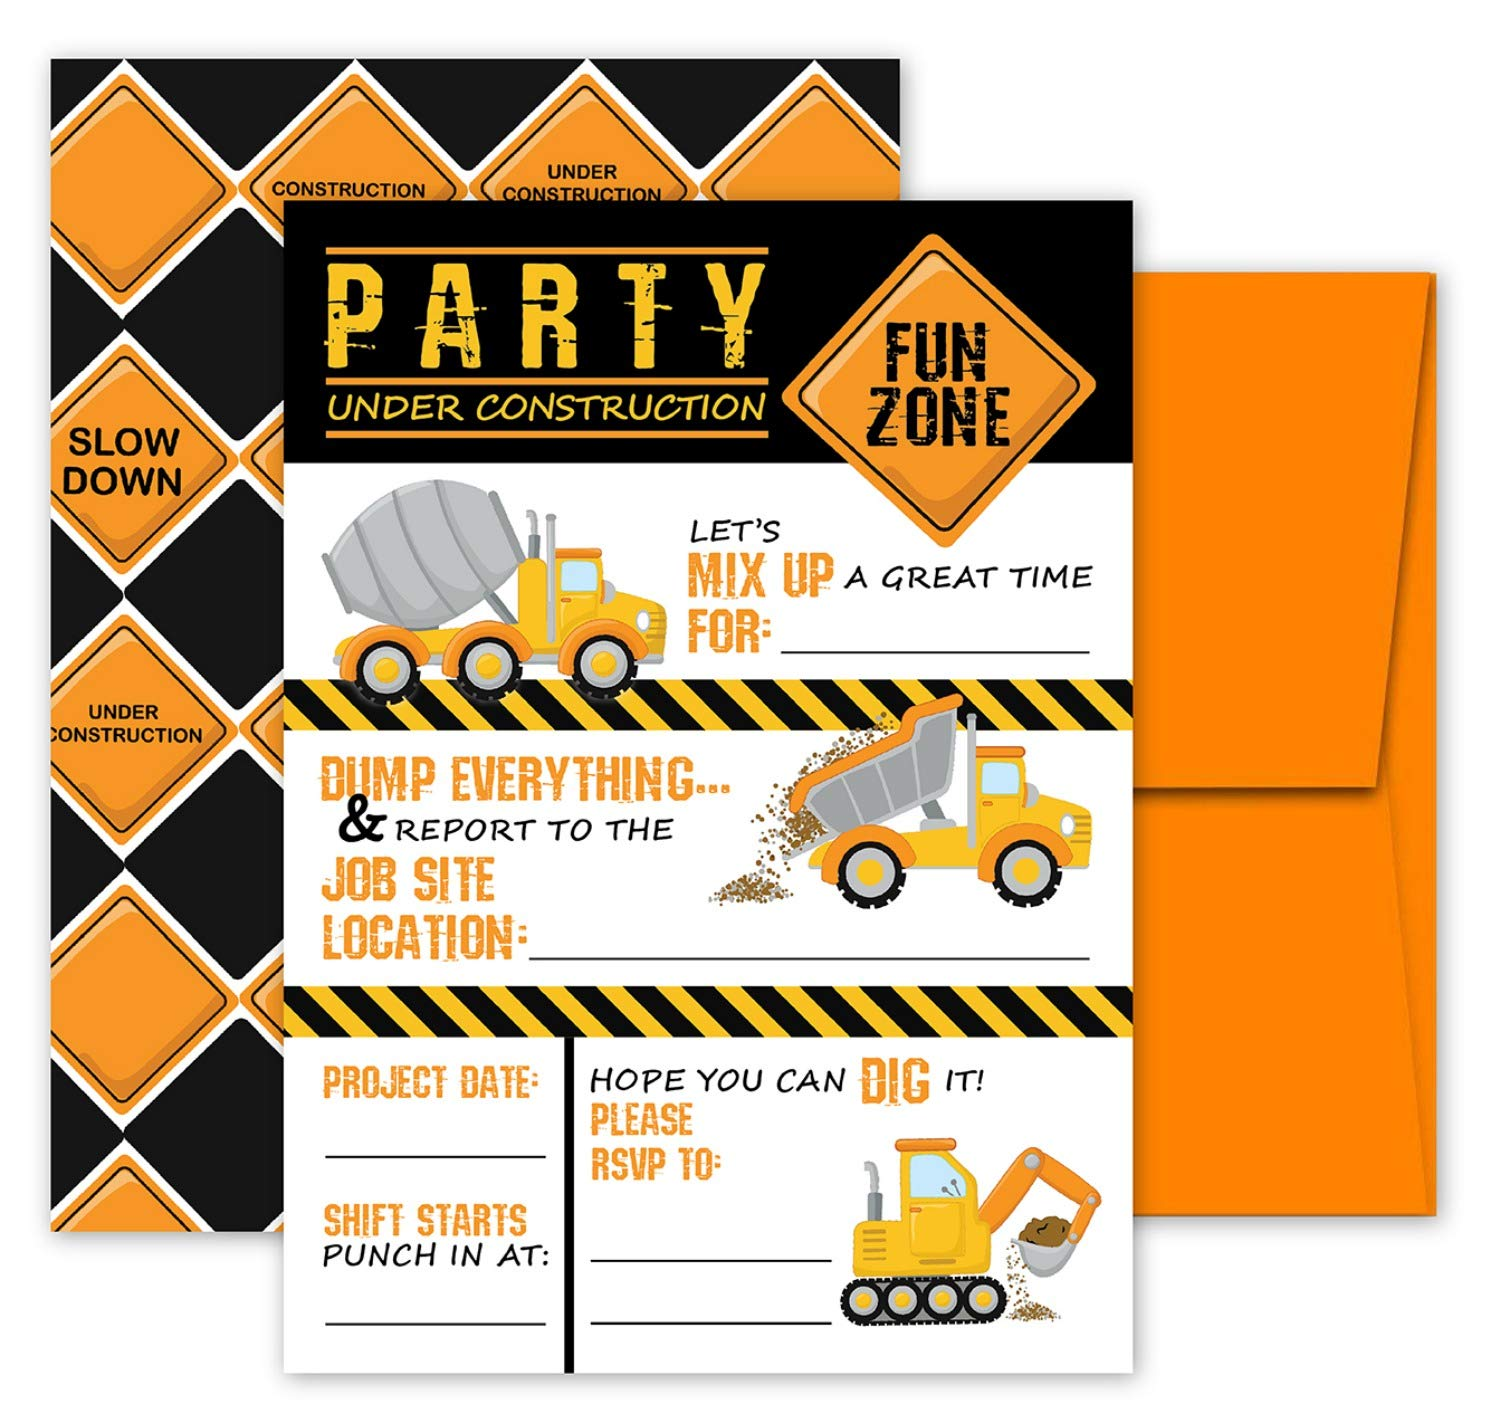 Deluxe Construction Dump Truck Birthday Party Invitations for Boys 20 Double Sided Large 5 x 7 Flat Fill In Invites with Orange Envelopes Kids Party Supplies